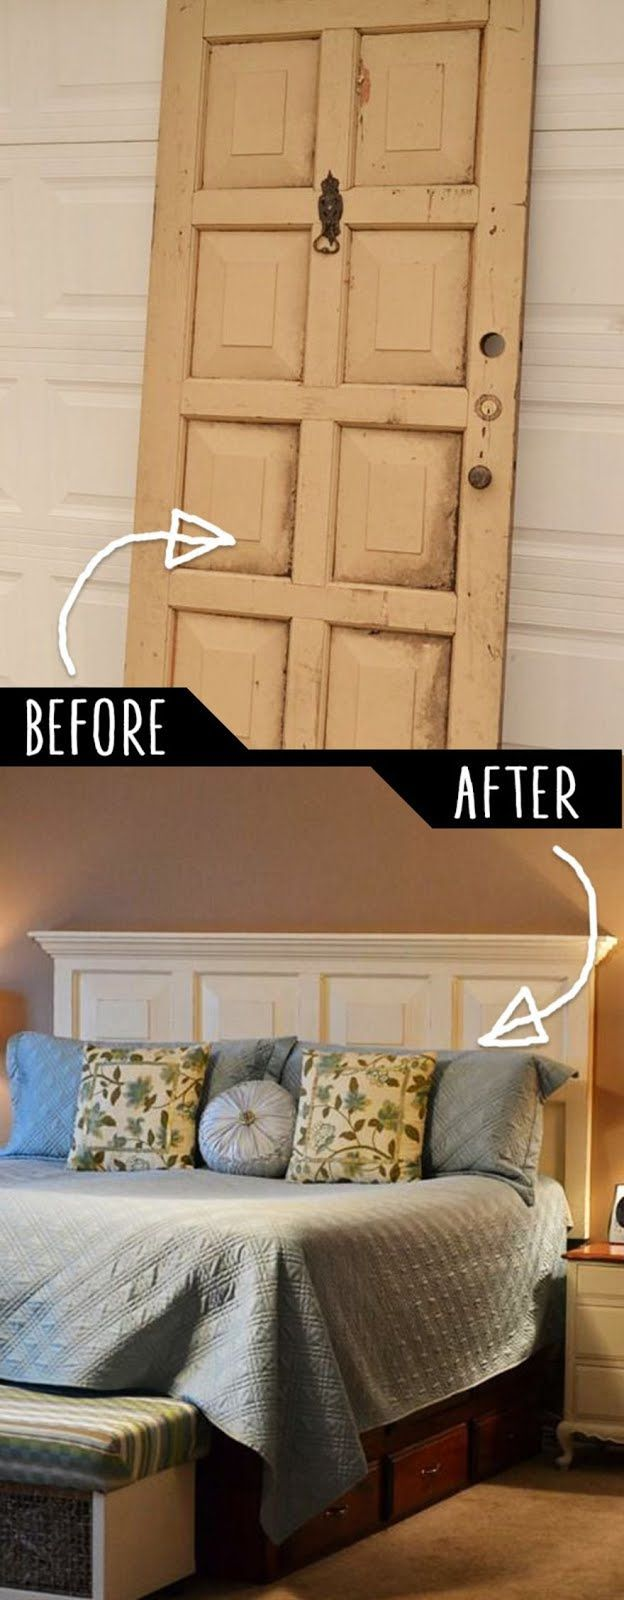 17 Super Clever Ways to Upcycle Old Furniture - HANDY DIY